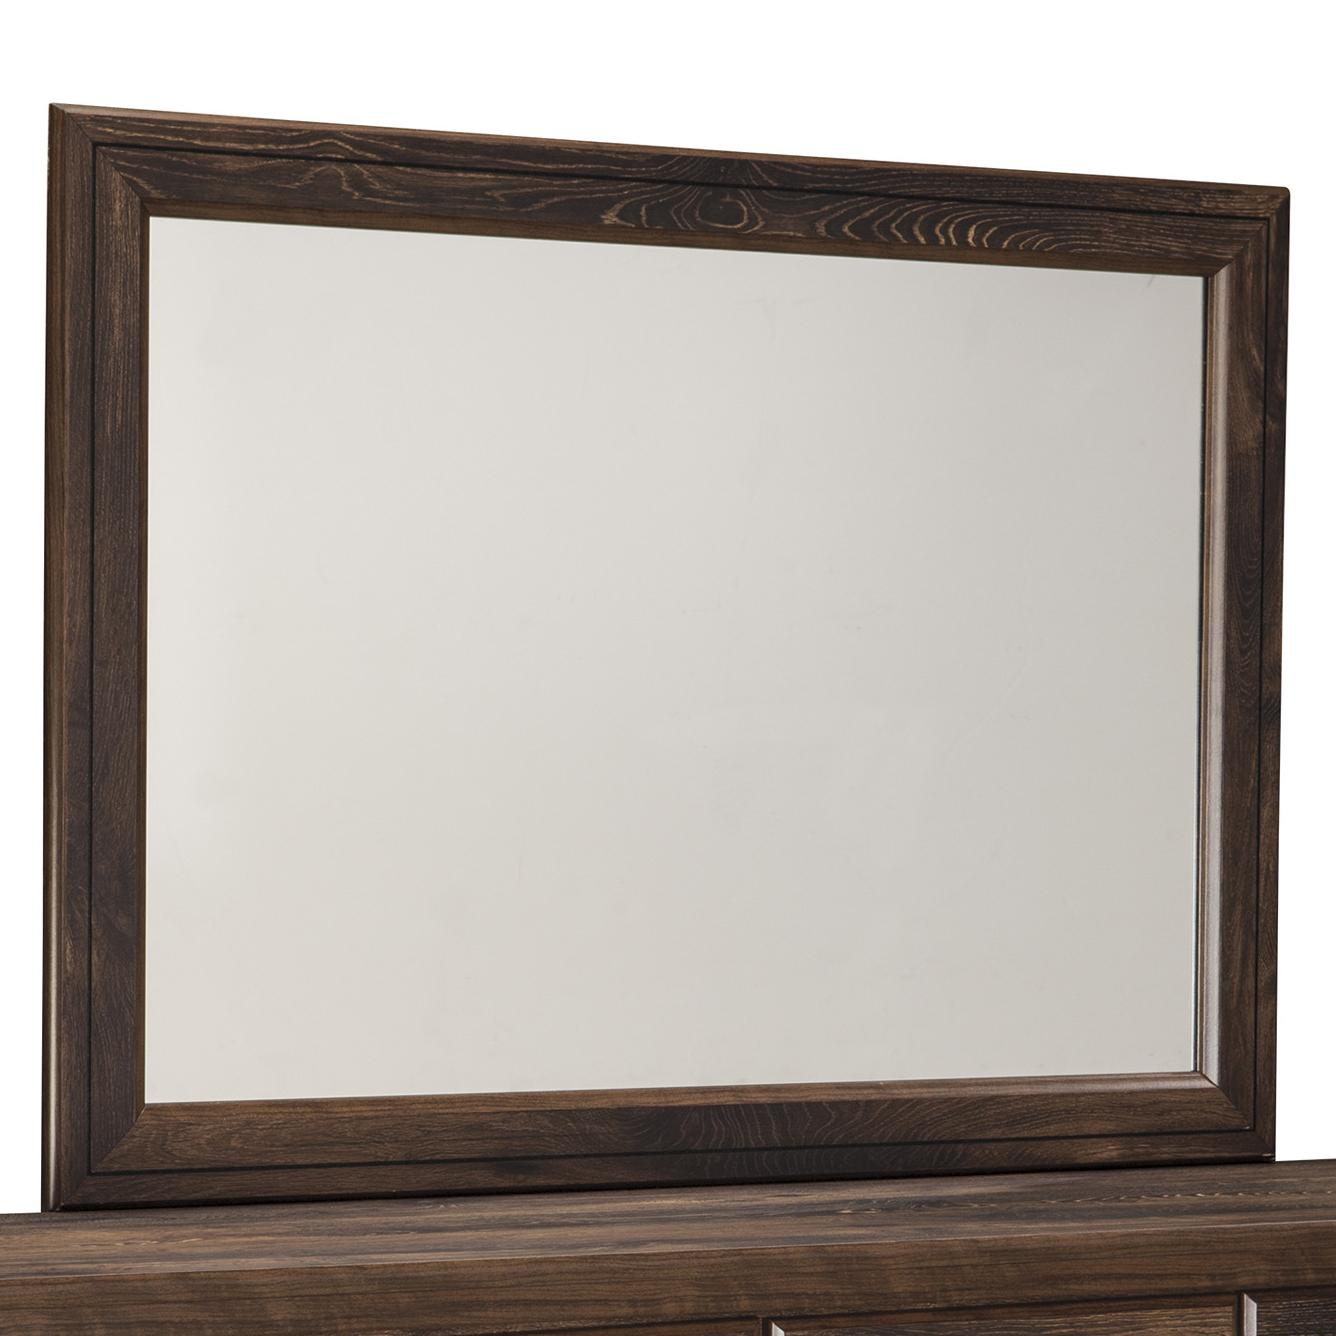 Quinden Bedroom Mirror by Signature Design by Ashley at Value City Furniture